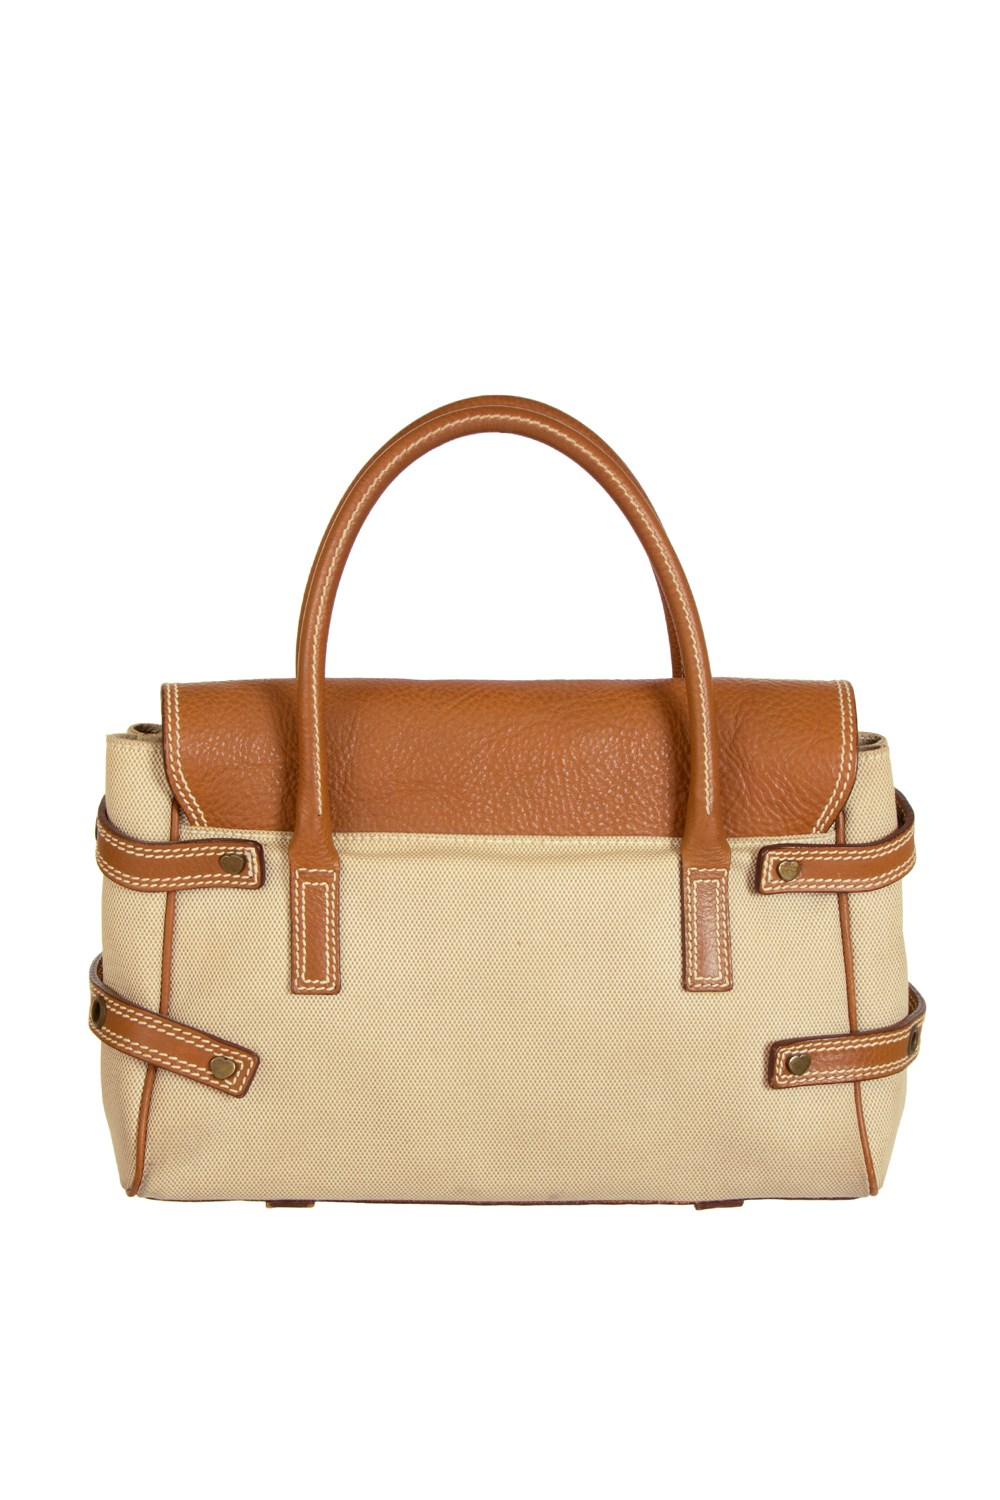 d1c1d290795c ... Gisele Beige and Tan Tote Bag. Mouse ...